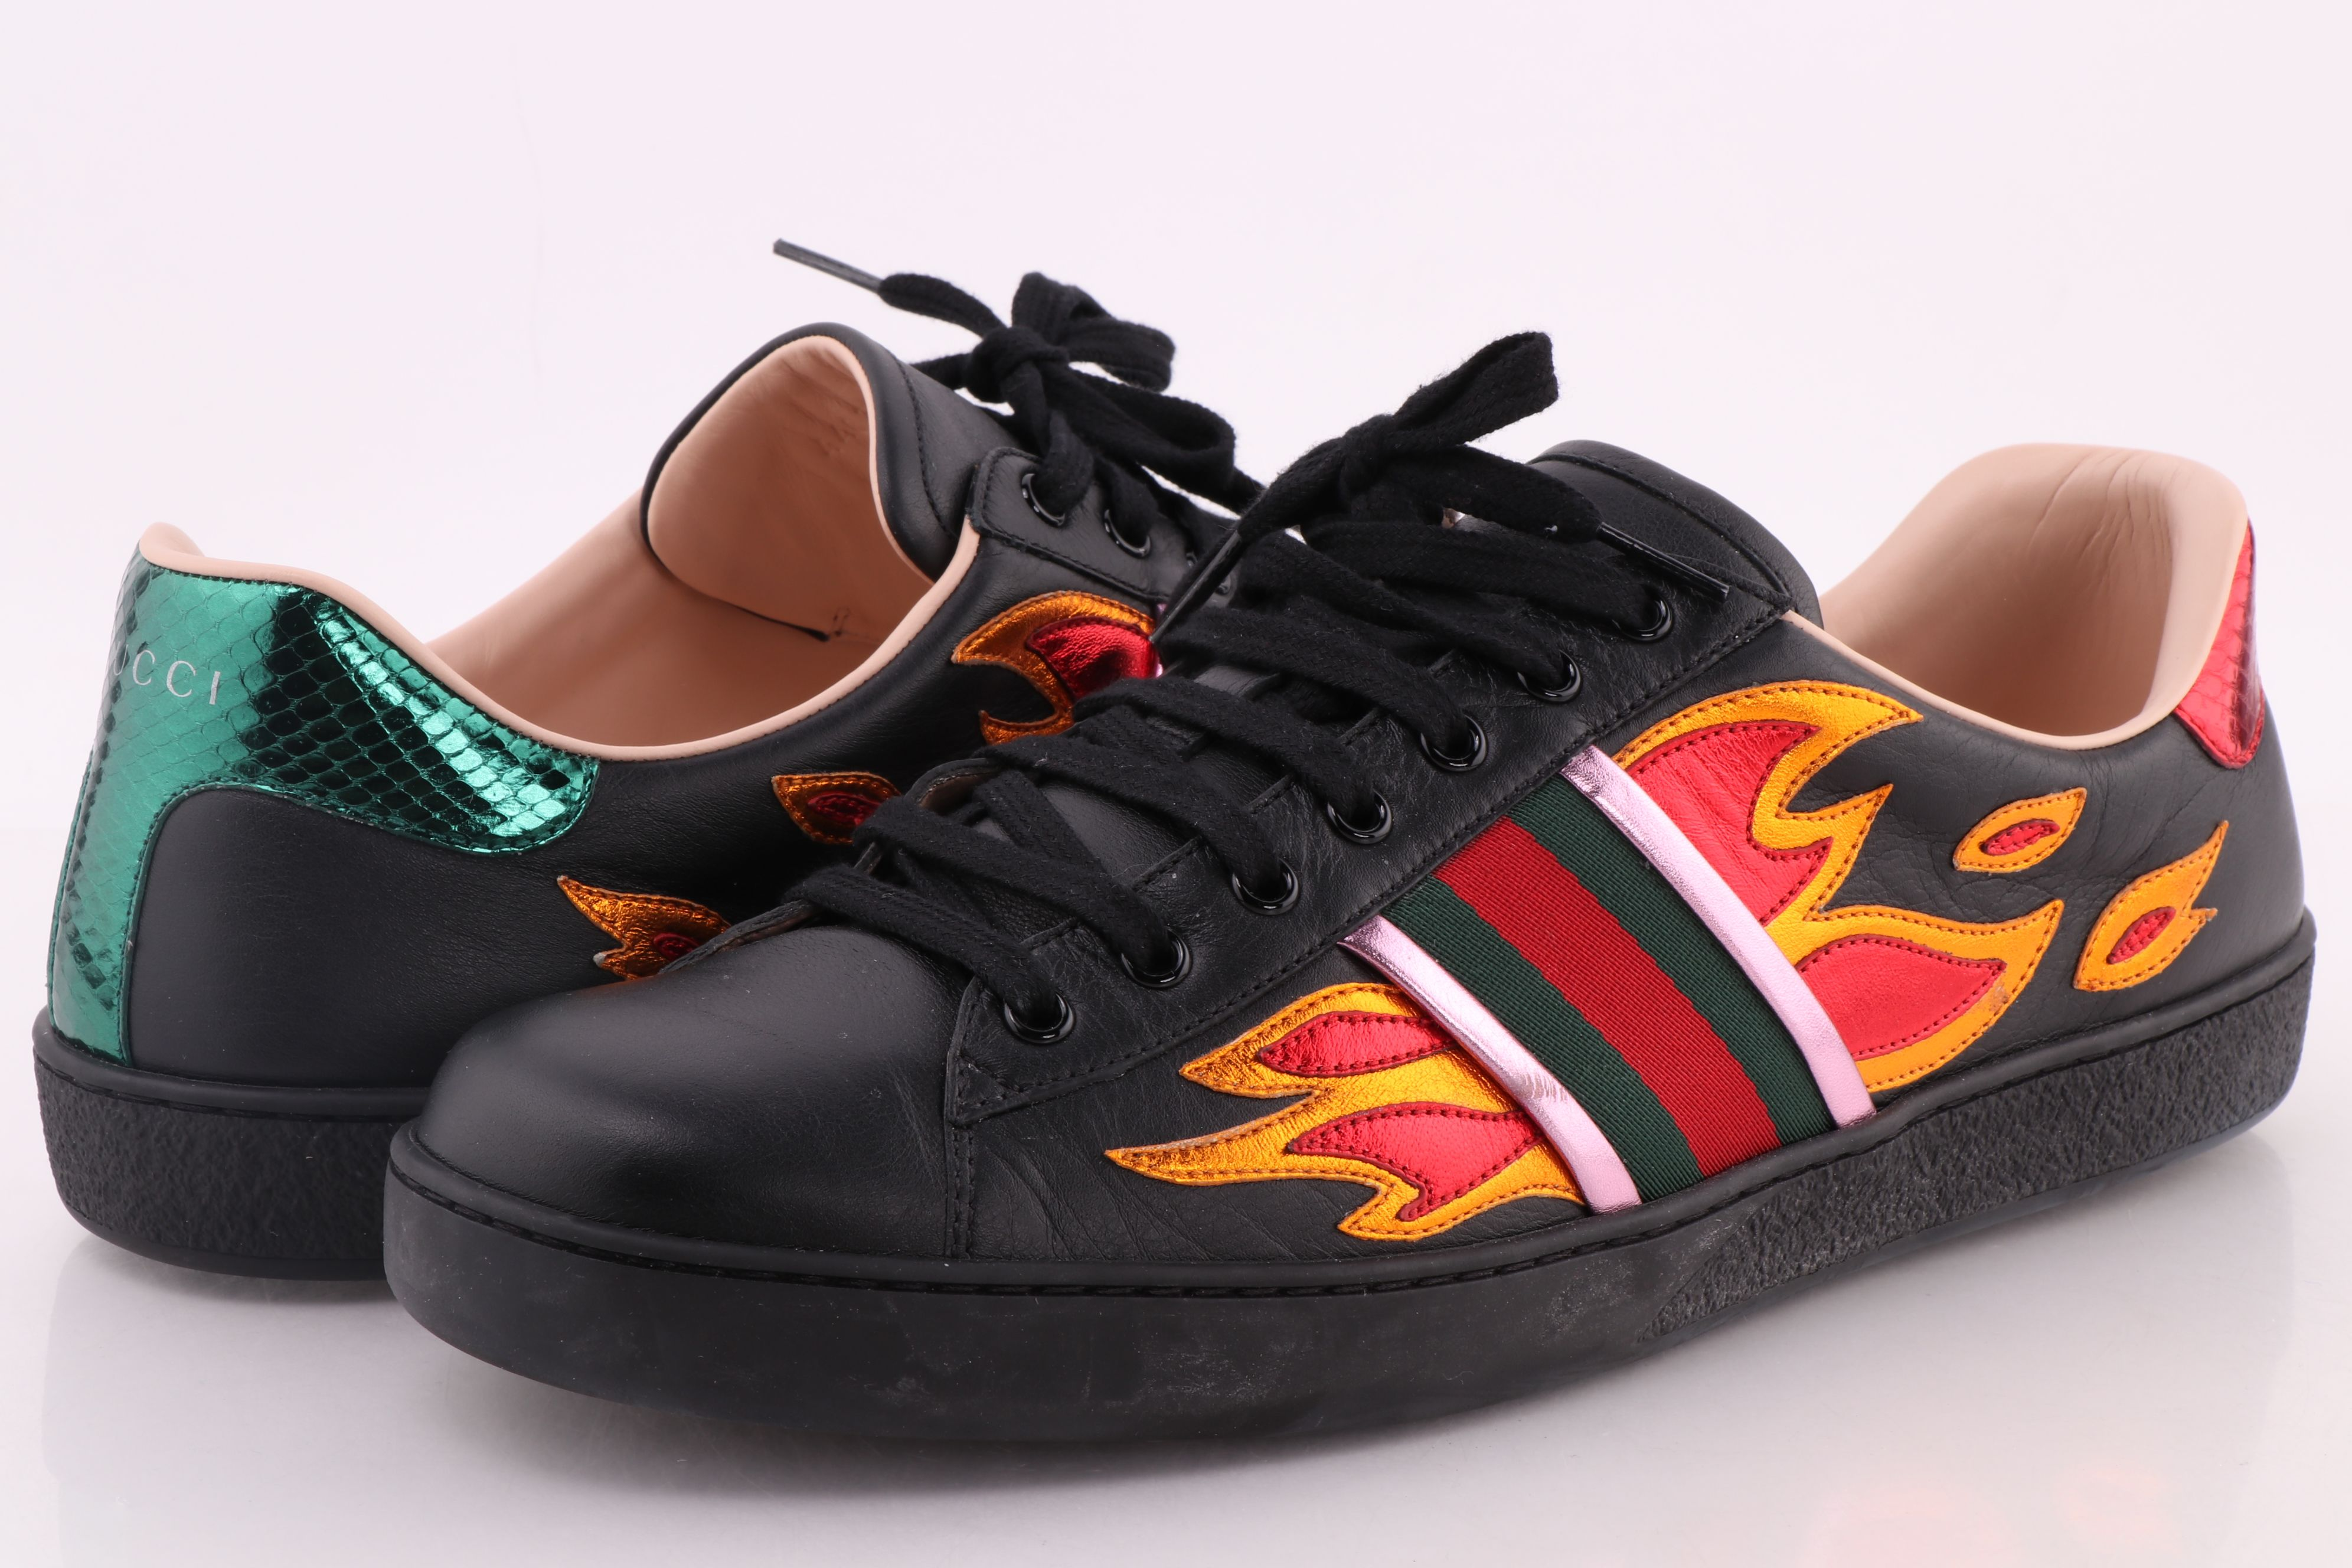 Gucci Black Ace Sneakers with Flames